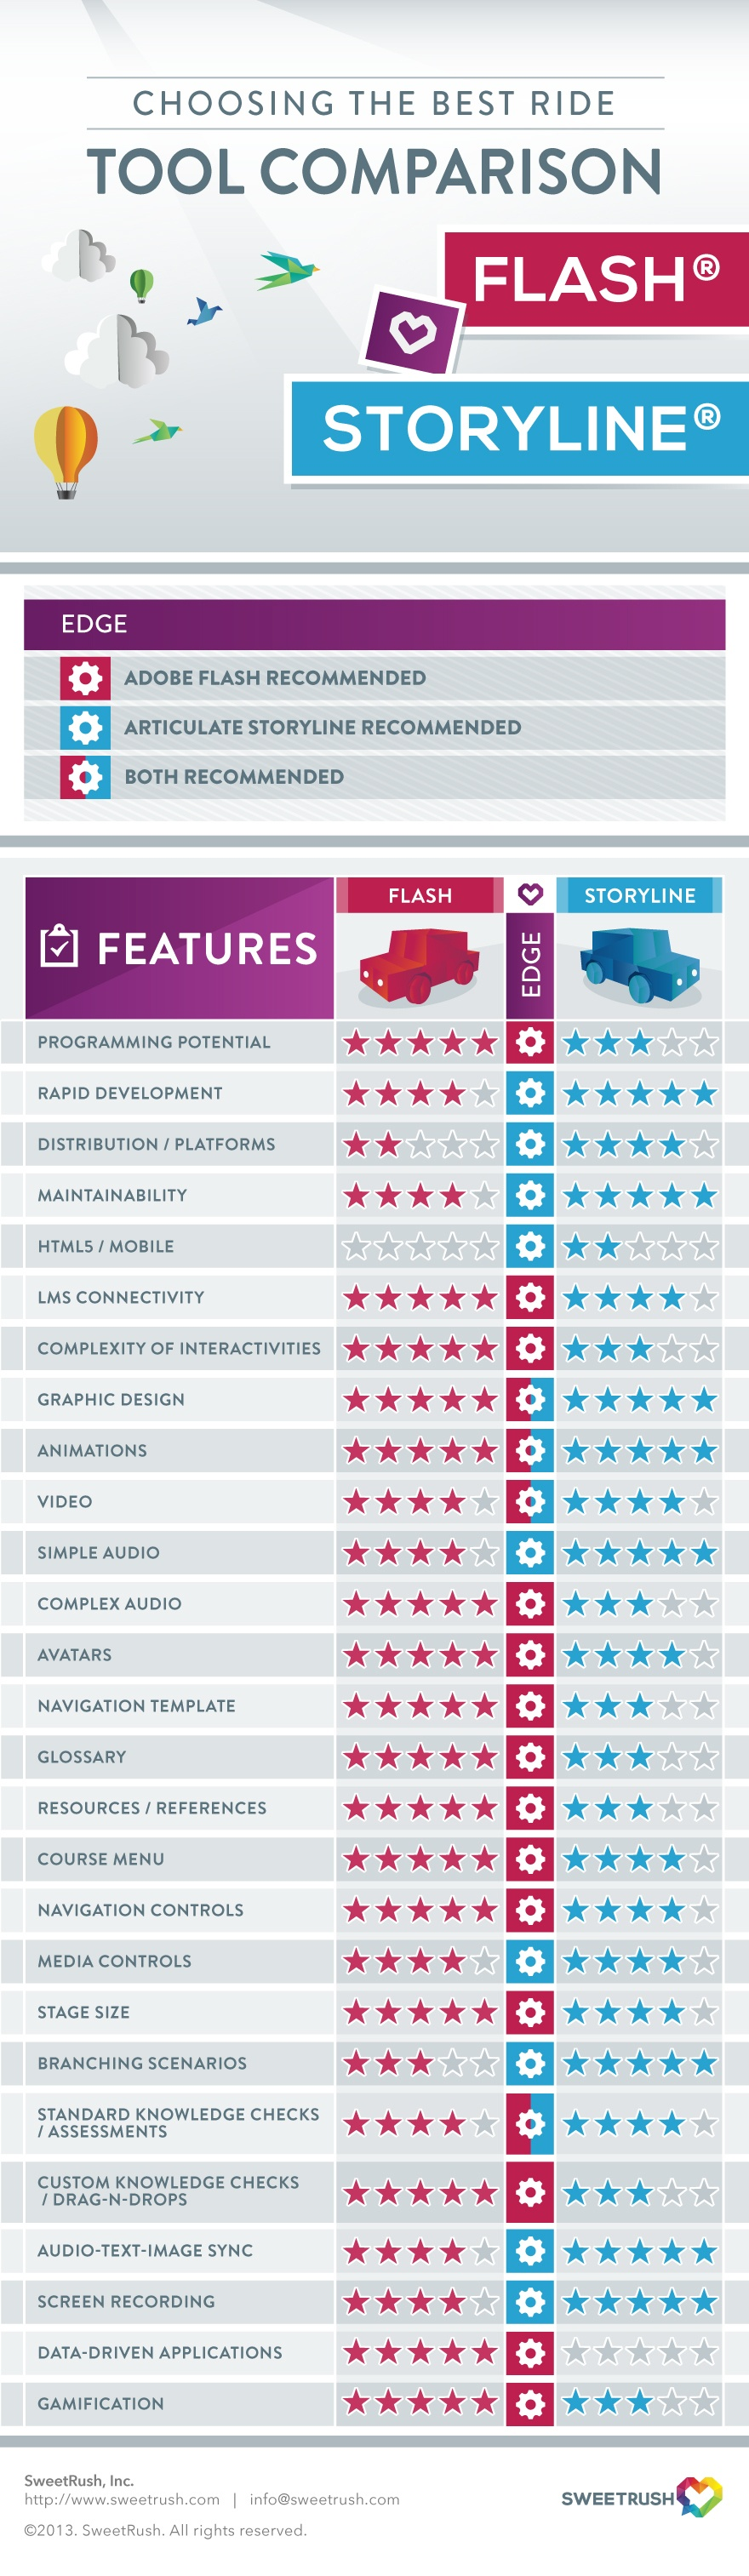 Adobe Flash vs Articulate Storyline Infographic